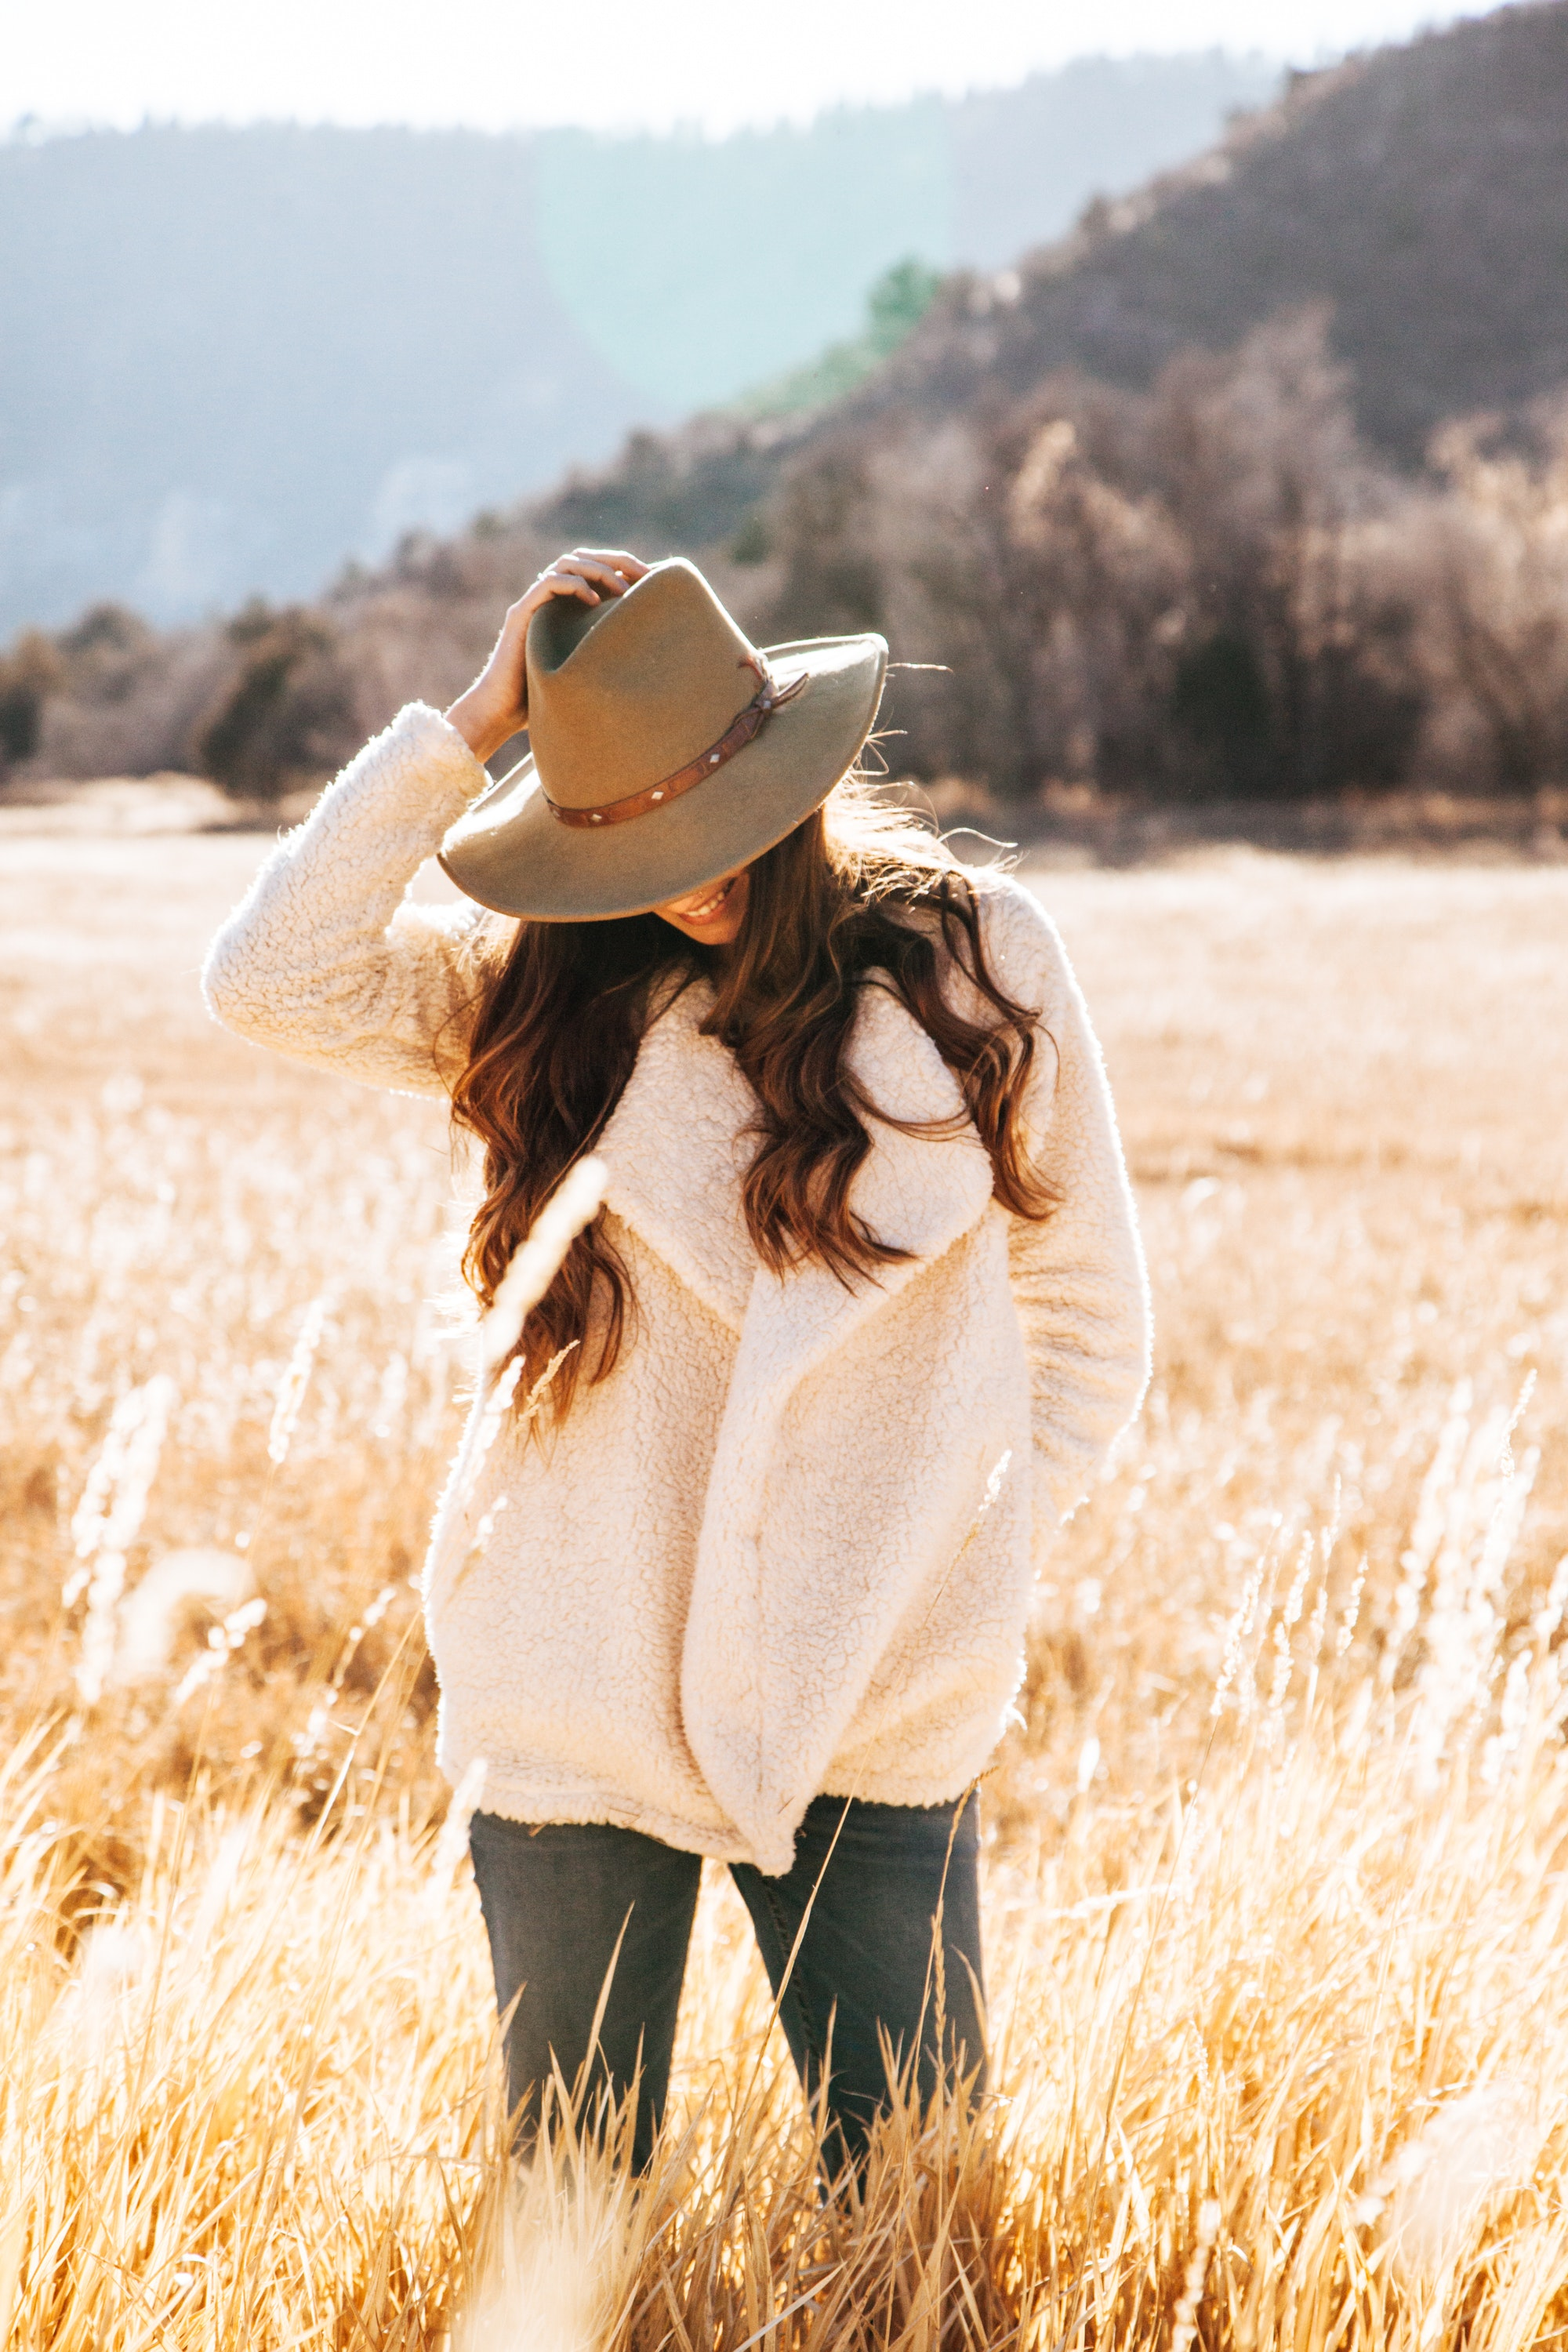 Smiling Woman in White Winter Jacket Wearing Brown Cowboy Hat Surrounded of Brown Grass Field, Outdoors, Person, Outside, Nature, HQ Photo